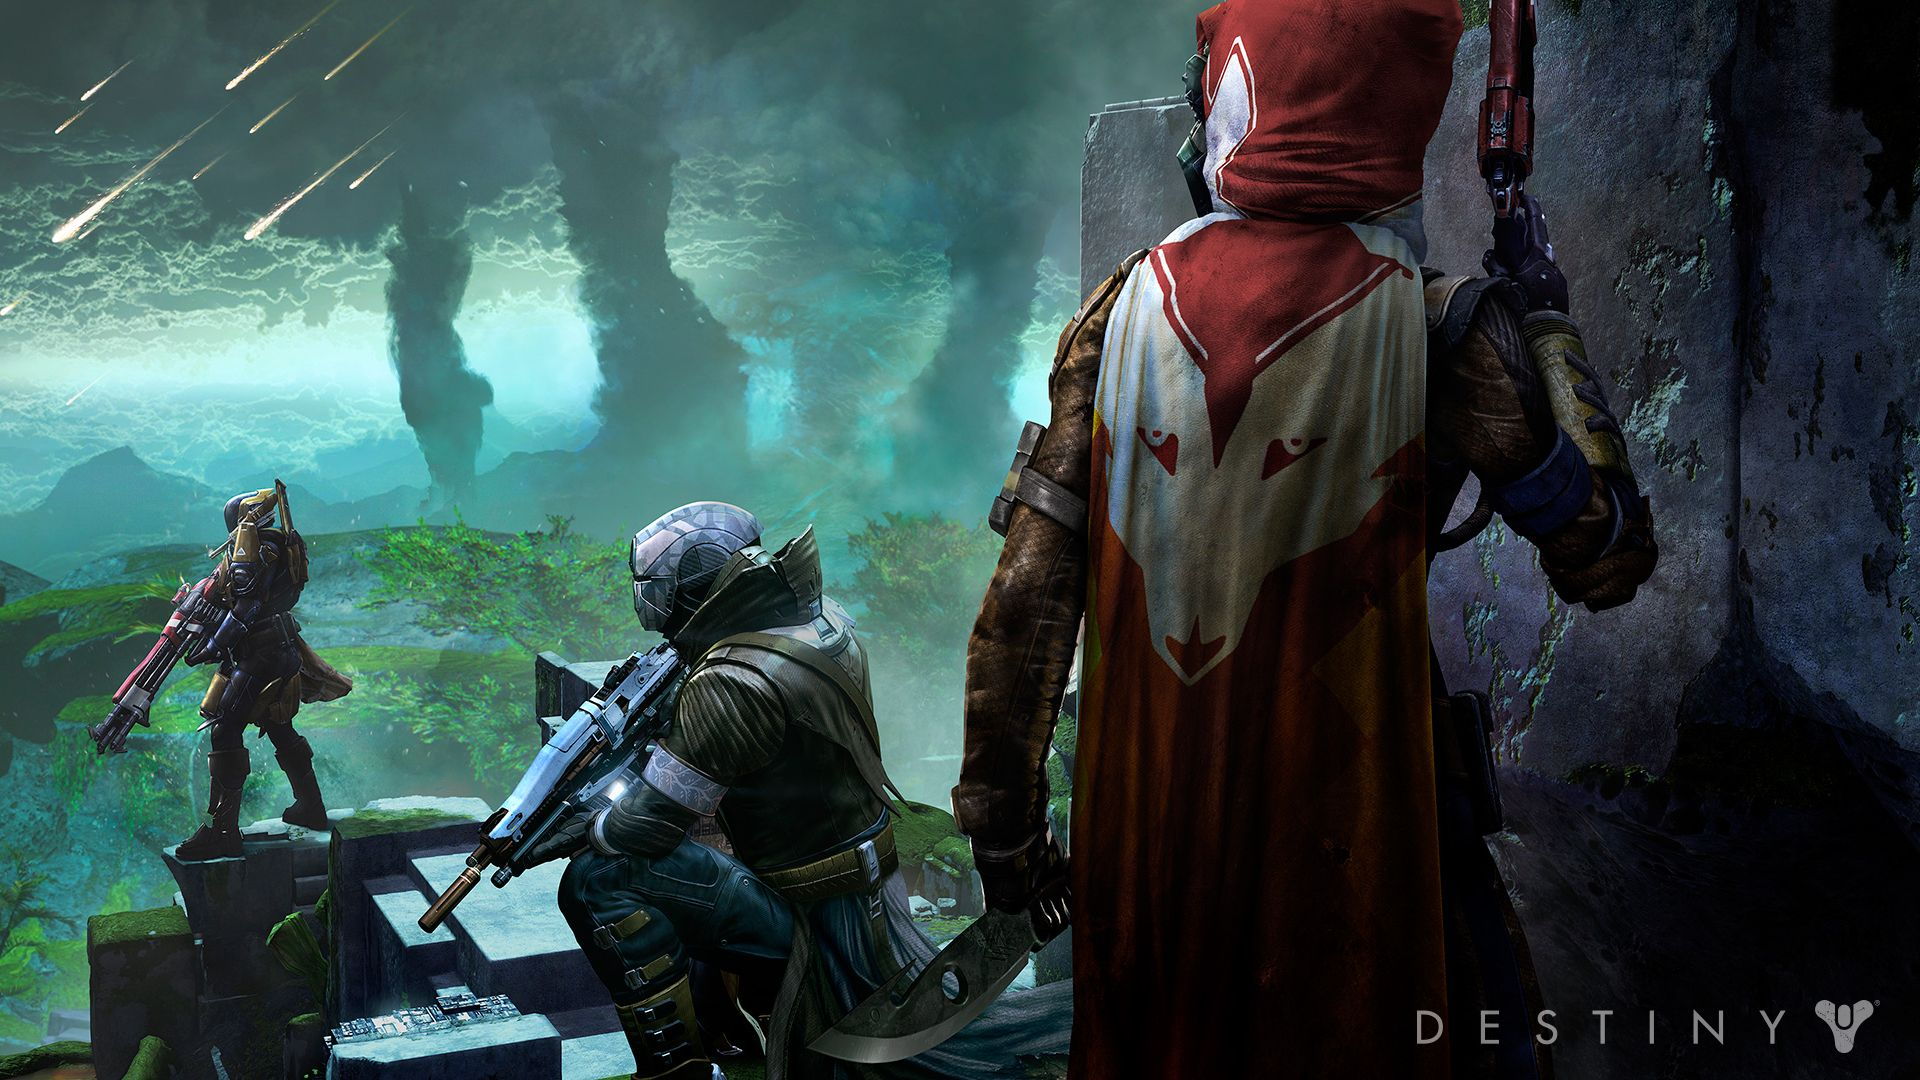 destiny-wallpaper-2-destiny-wallpapers